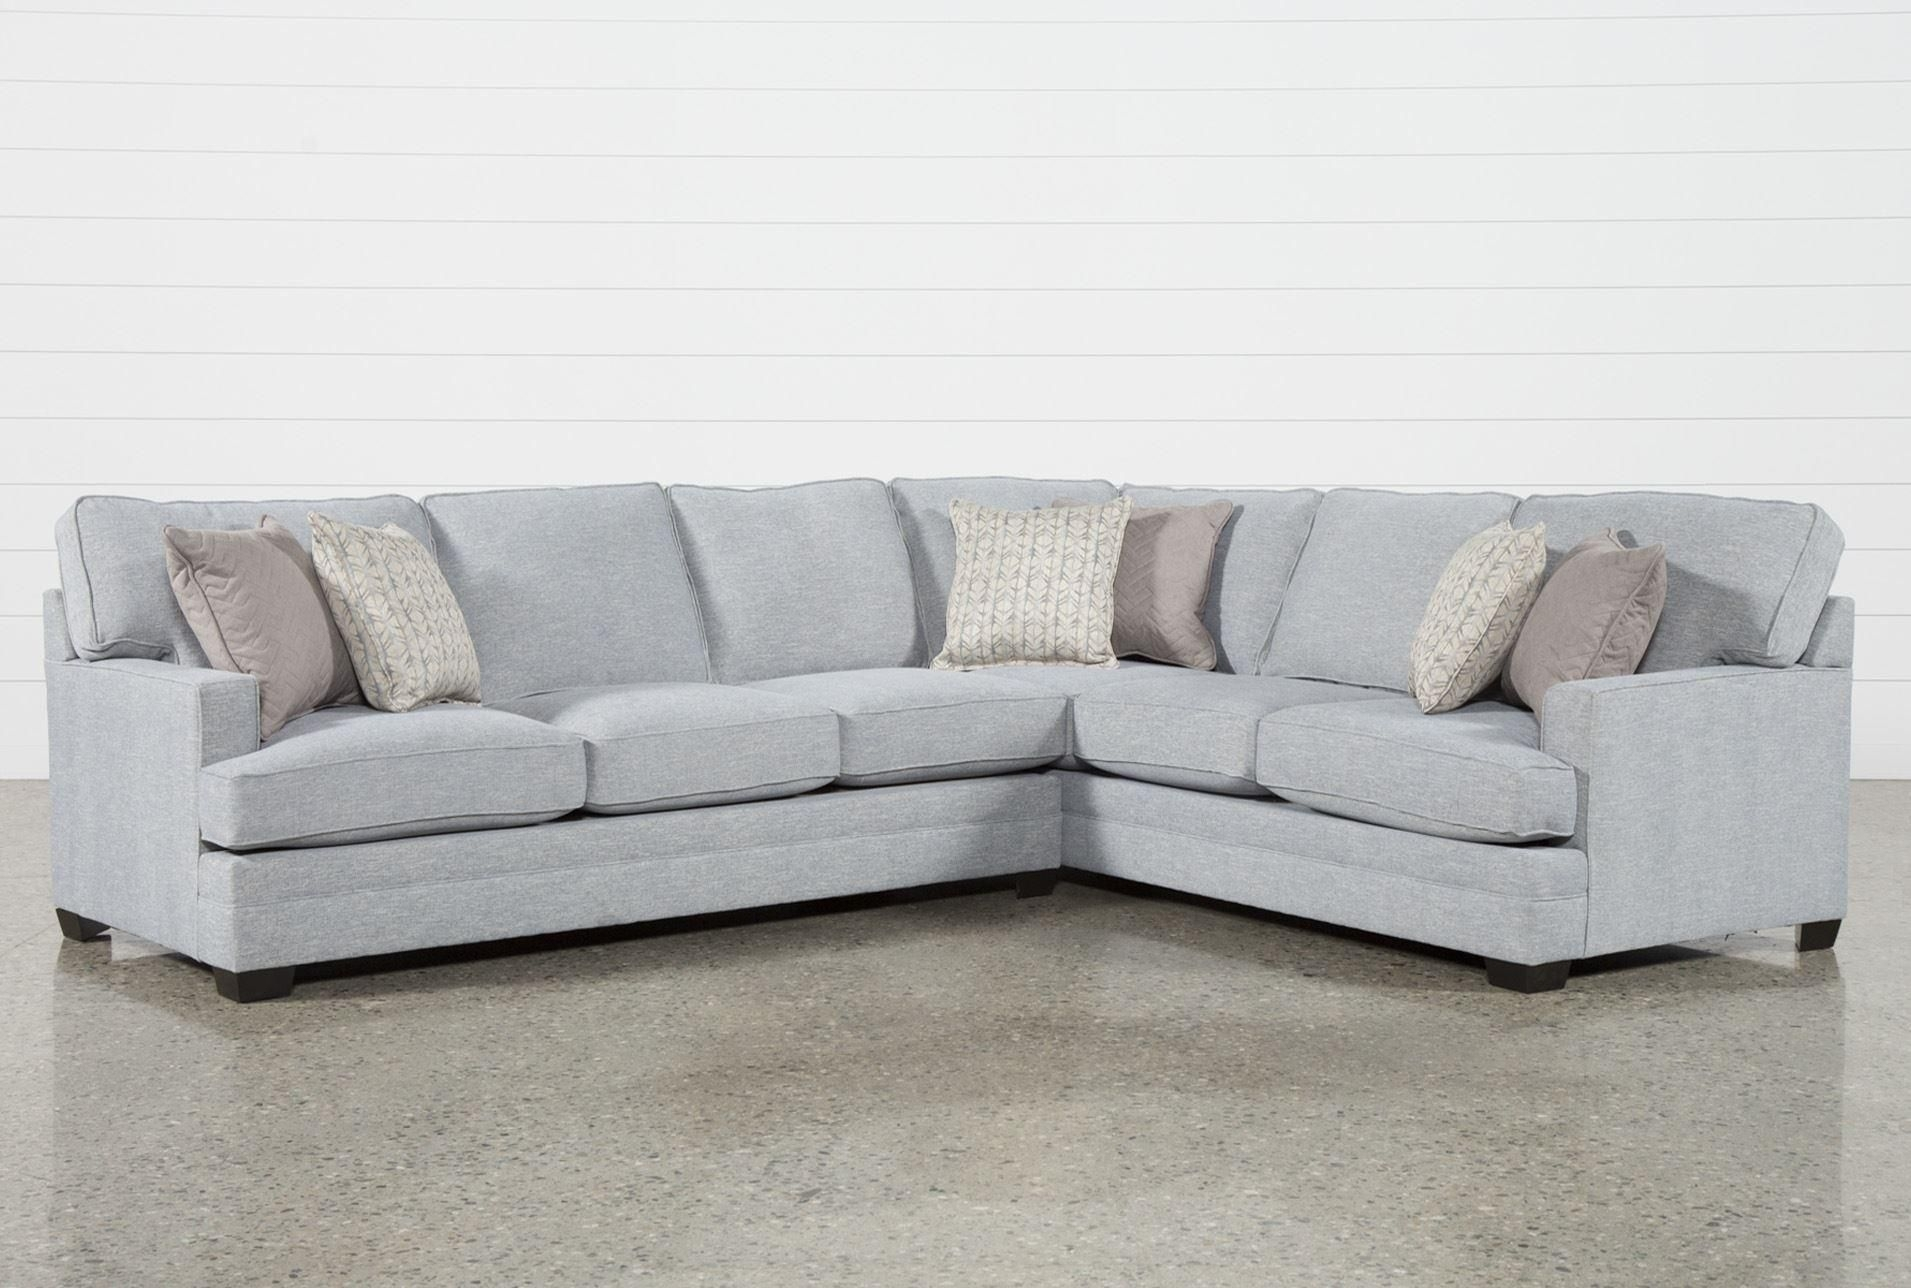 Josephine 2 Piece Sectional W/laf Sofa | For The Home | Pinterest With Regard To Aquarius Dark Grey 2 Piece Sectionals With Raf Chaise (Image 7 of 25)